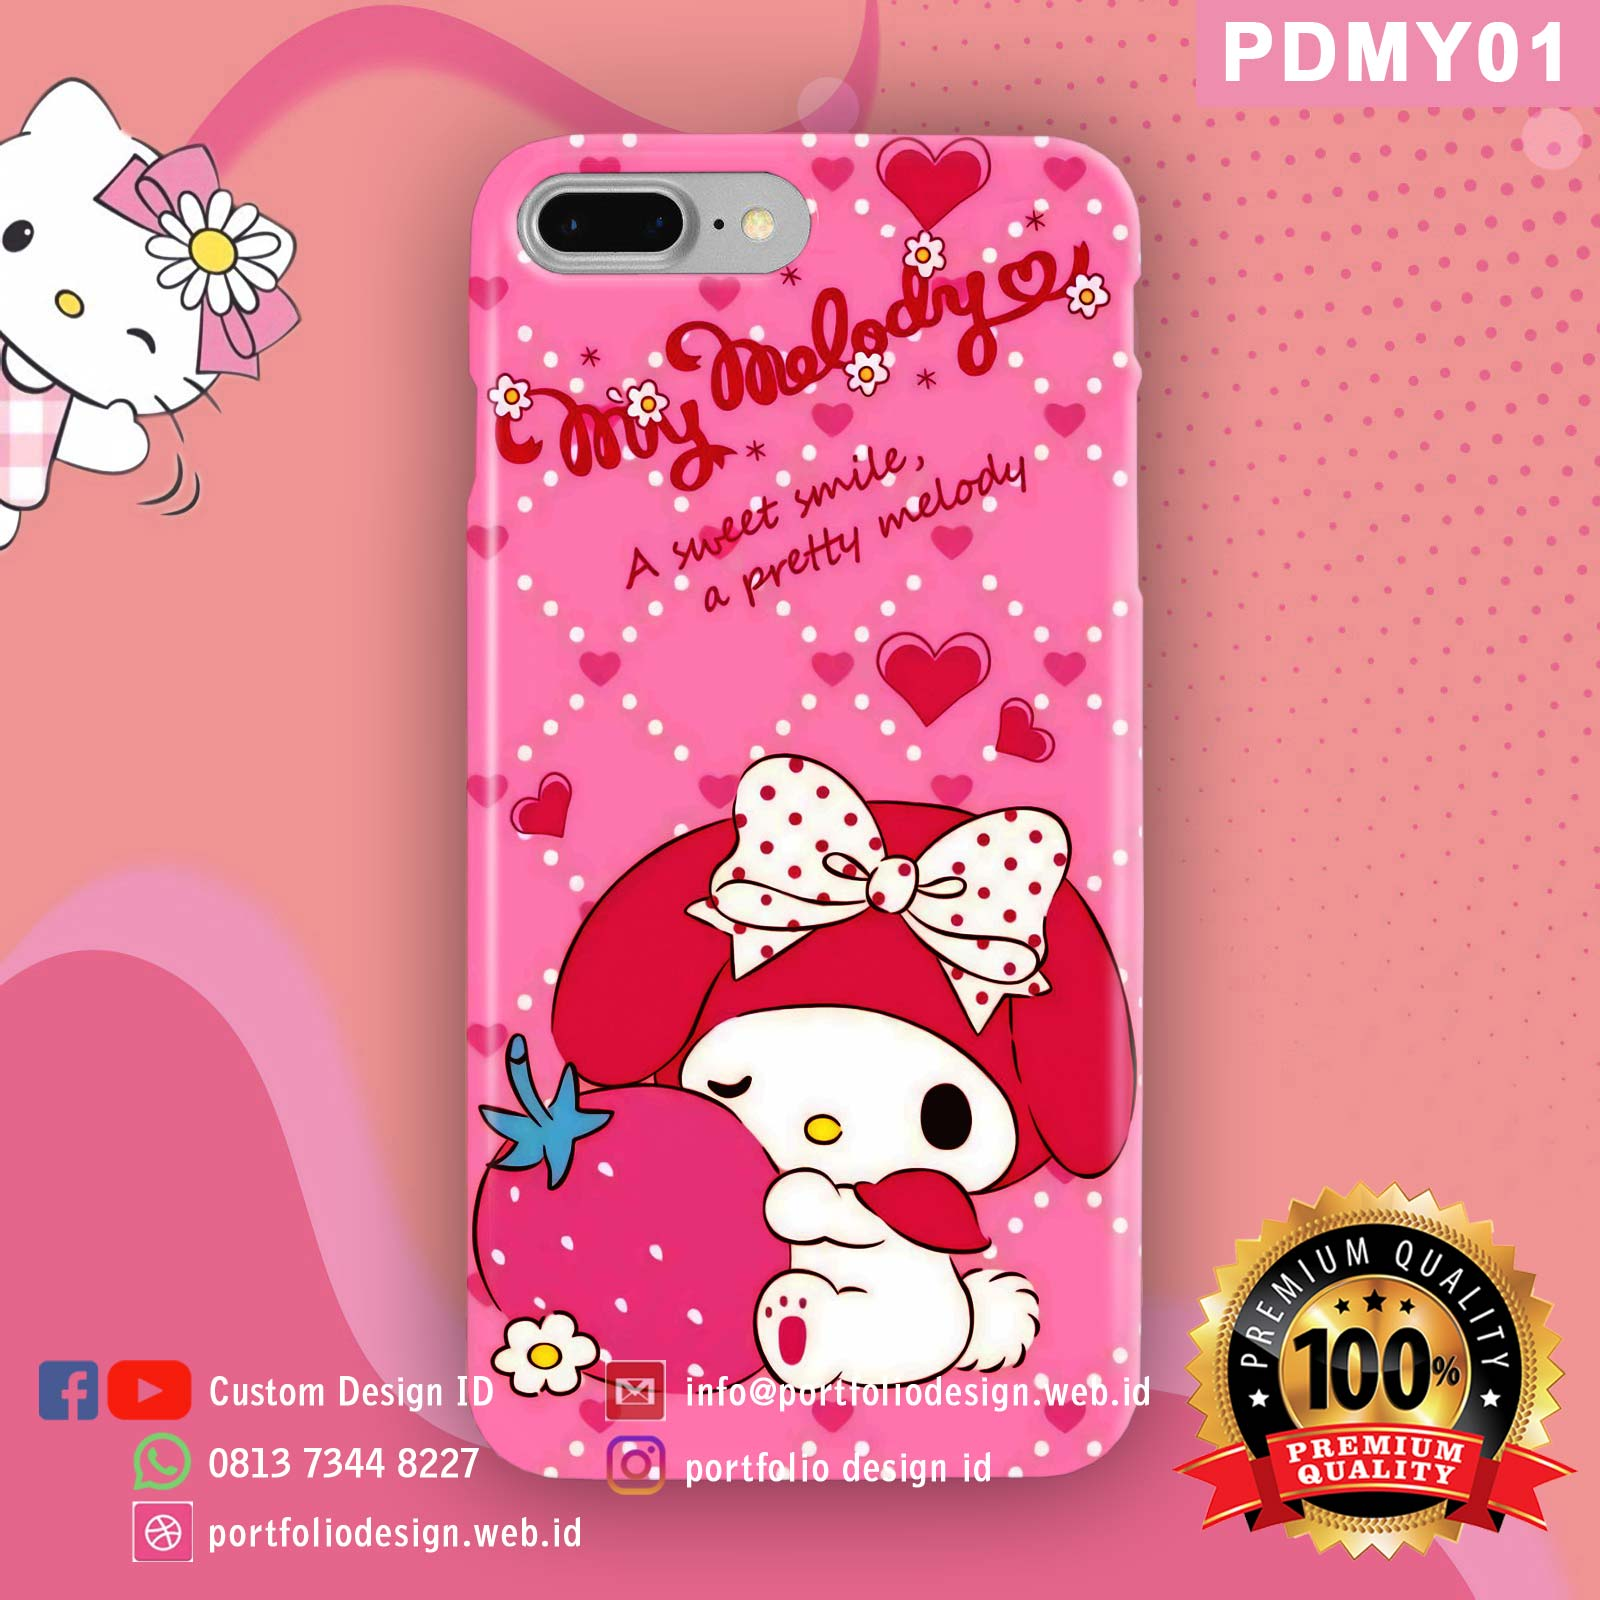 Casing hp my melody PDMY01